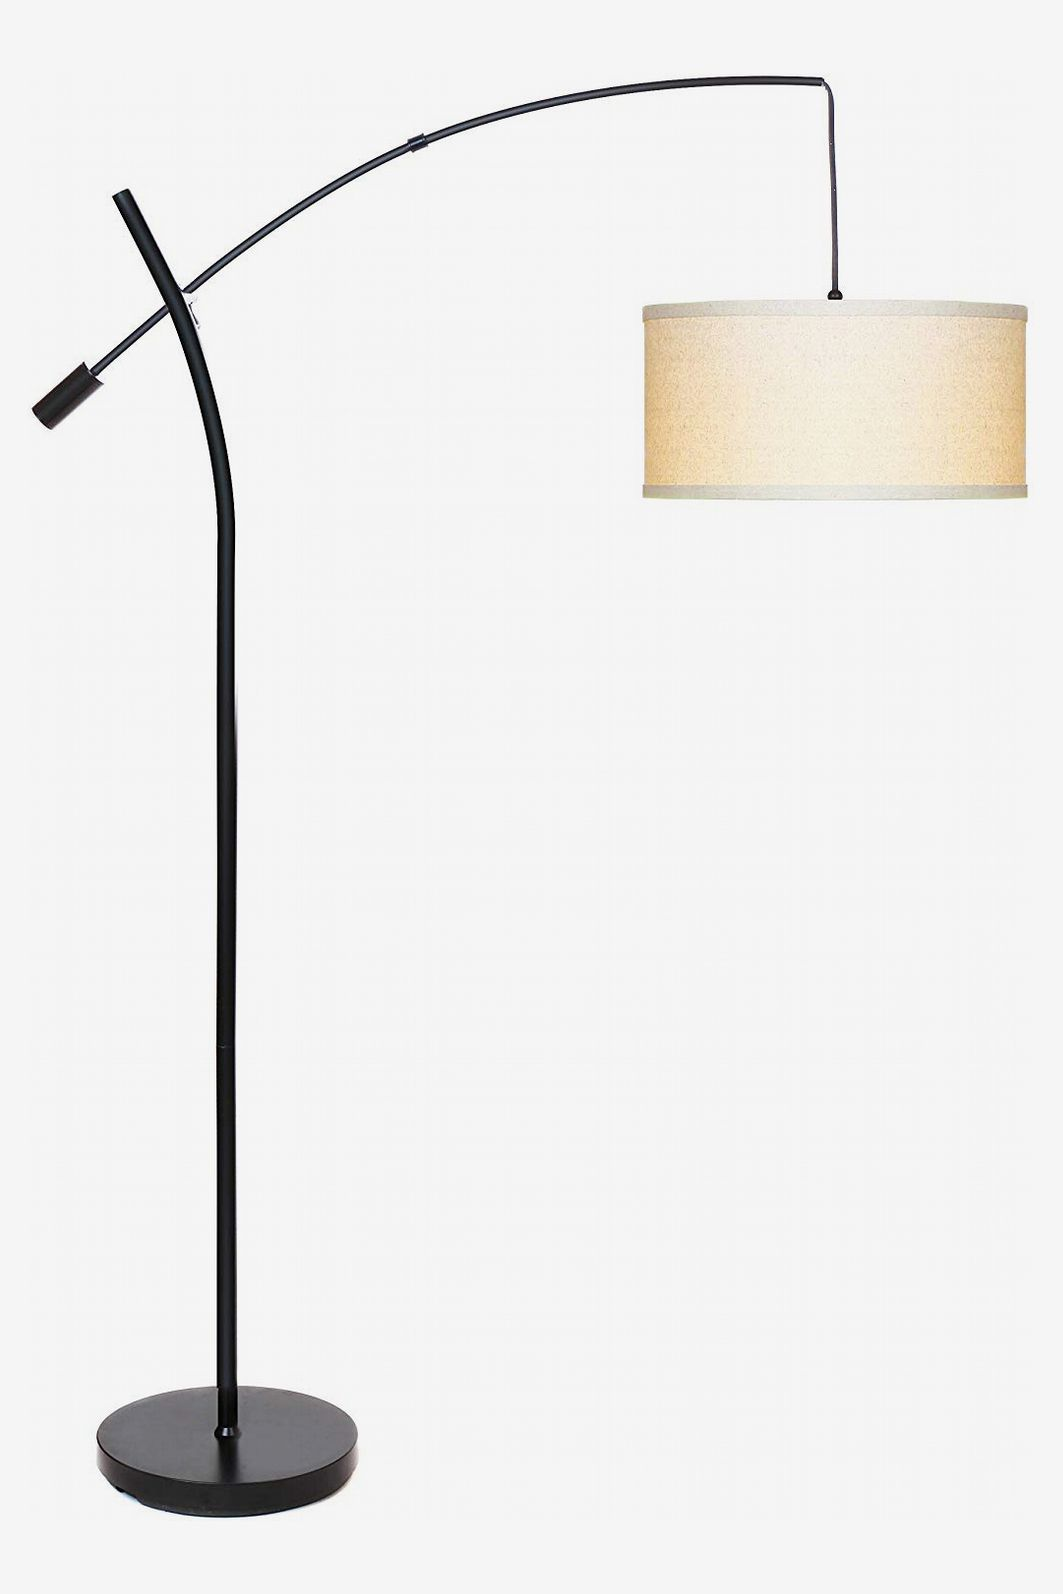 10 Cheap Floor Lamps And Table Lamps On Amazon 2018 The